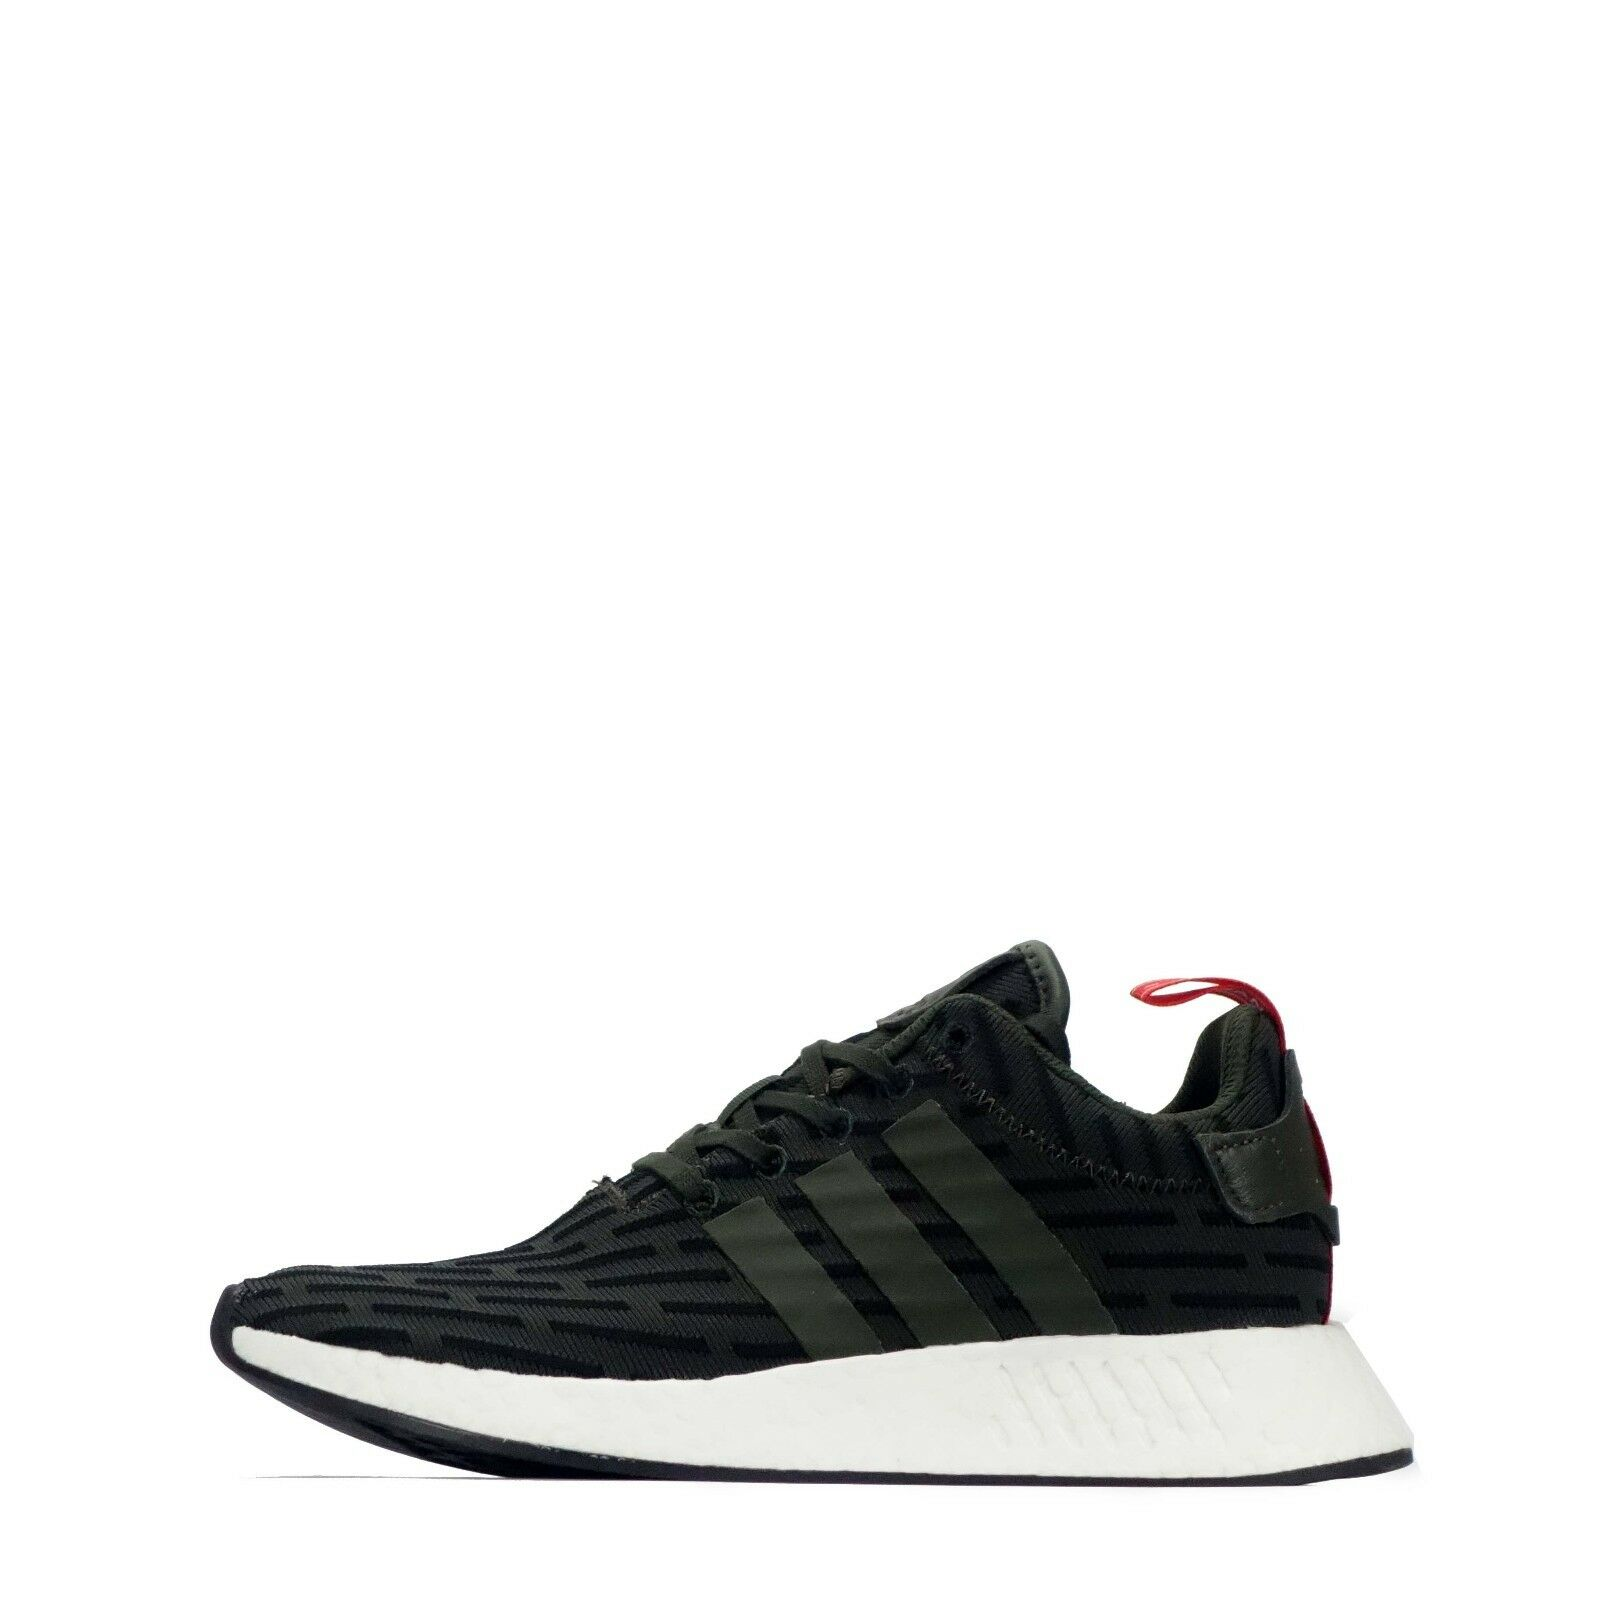 adidas Originals NMD_R2 Men's Trainers Shoes Low Rise Dark Green/Black